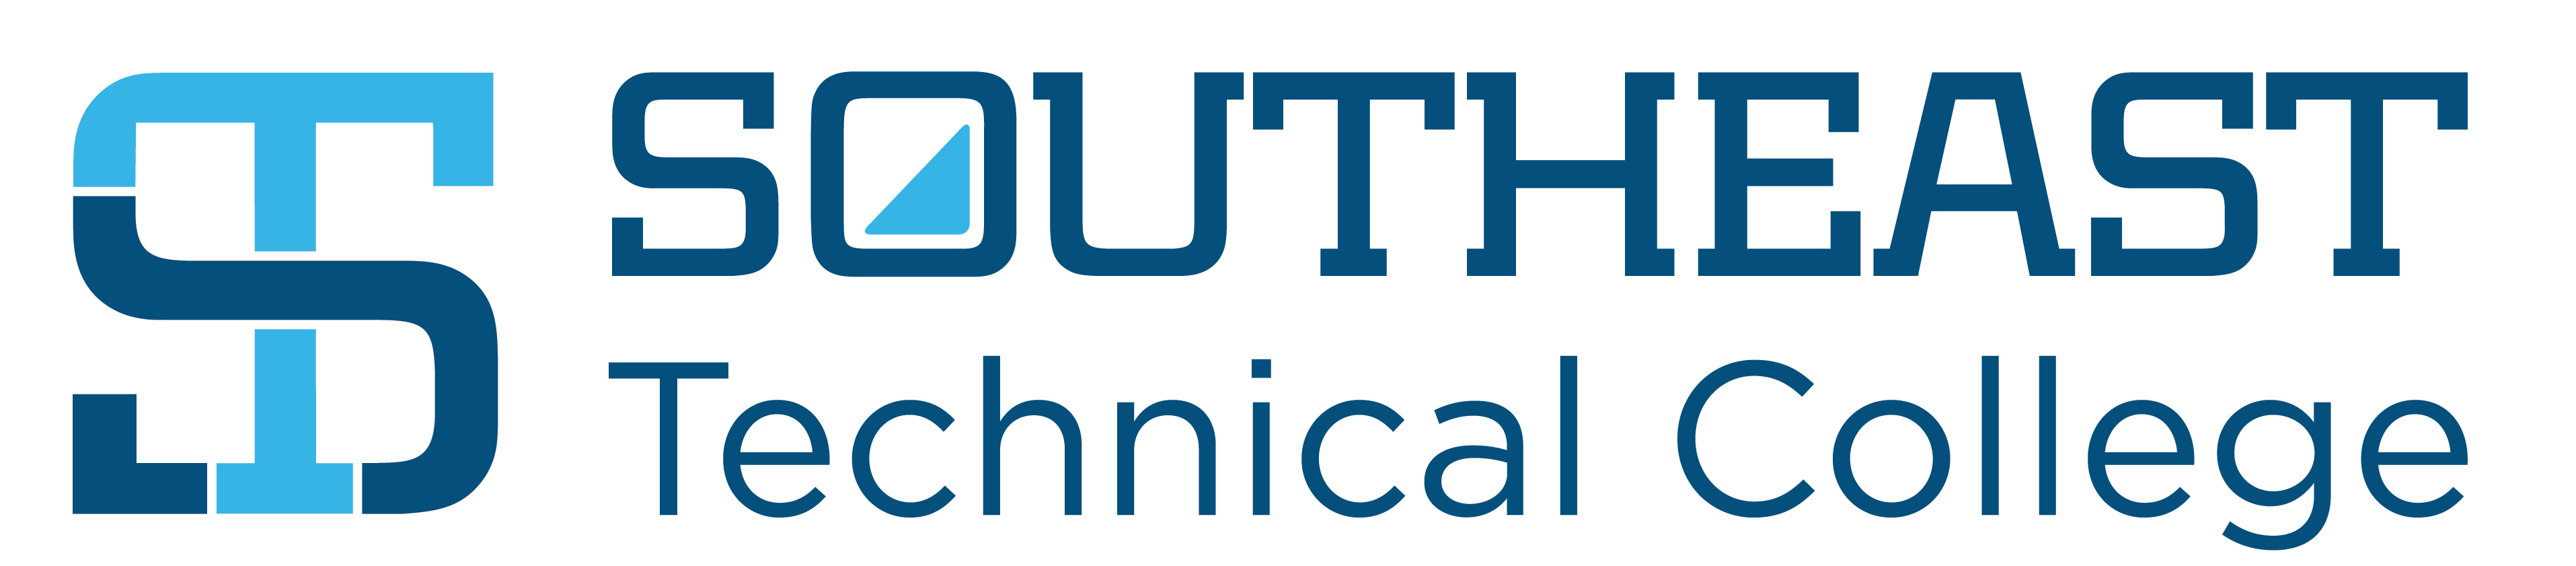 Southeast Technical College Sioux Falls South Dakota